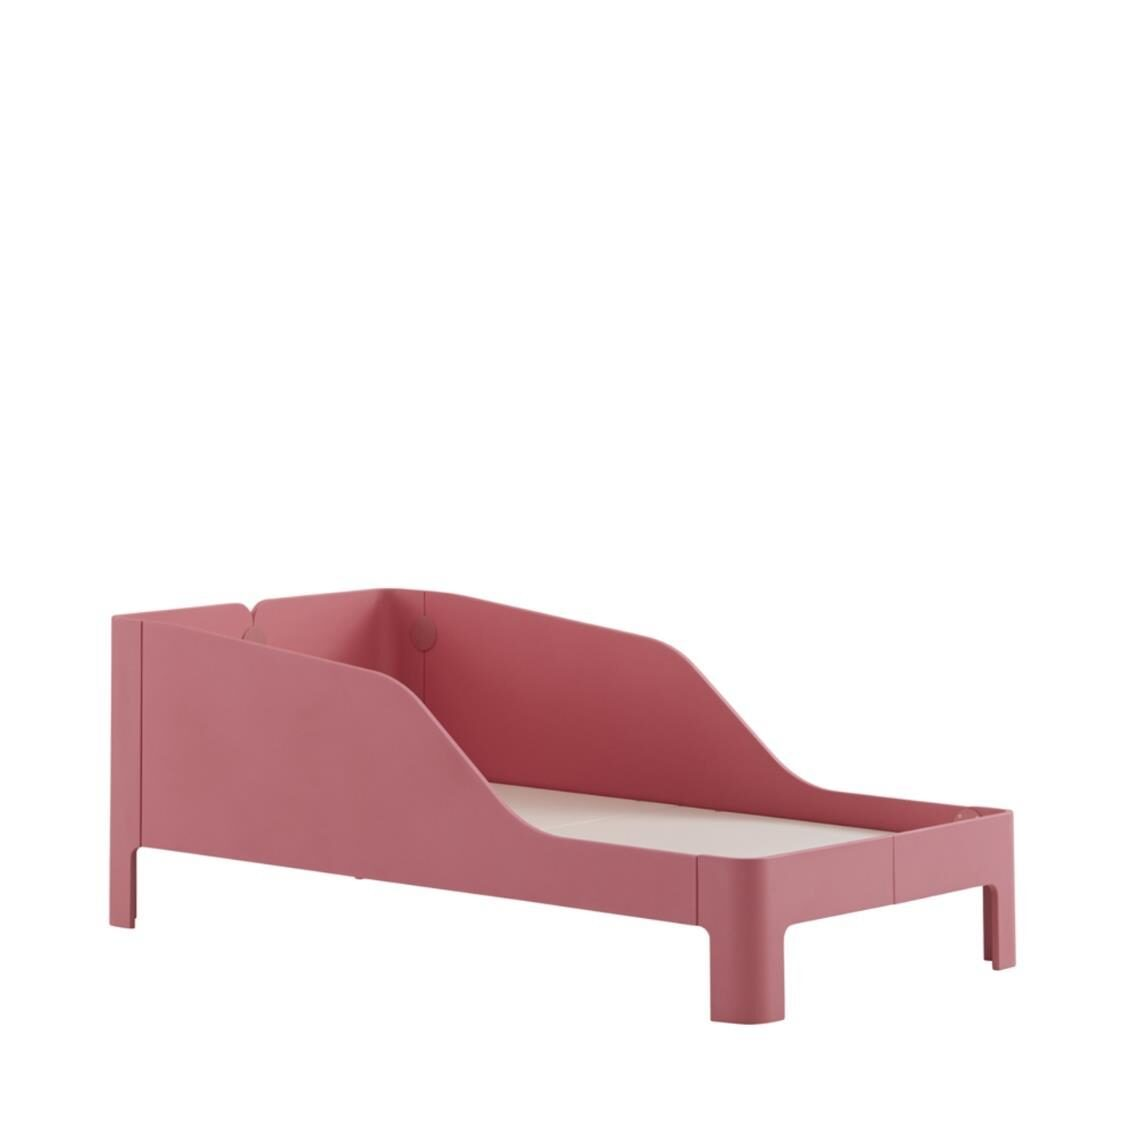 Tinkle Pop 1 Story Bed KP Pink